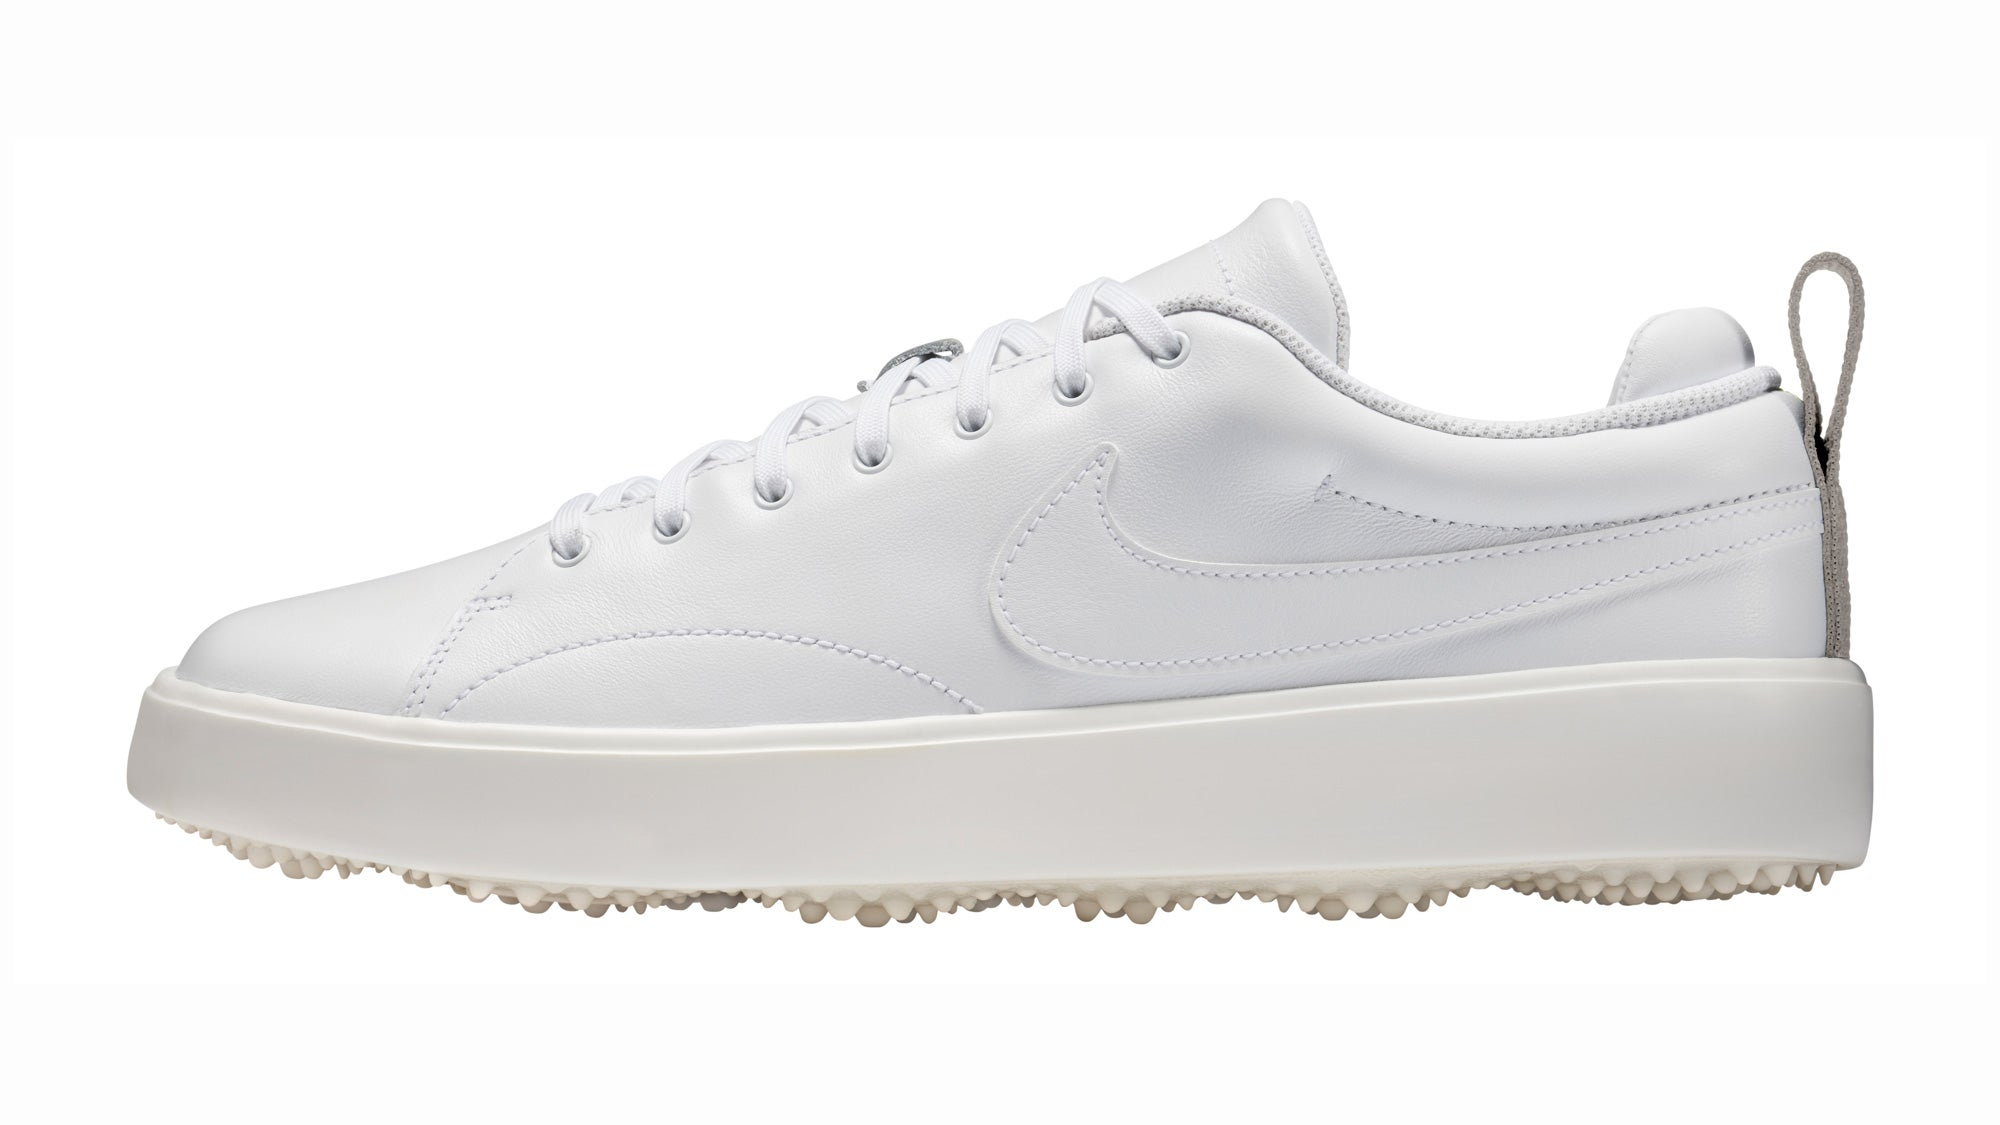 eff7ccd0fbb6 Nike releases  Course Classic